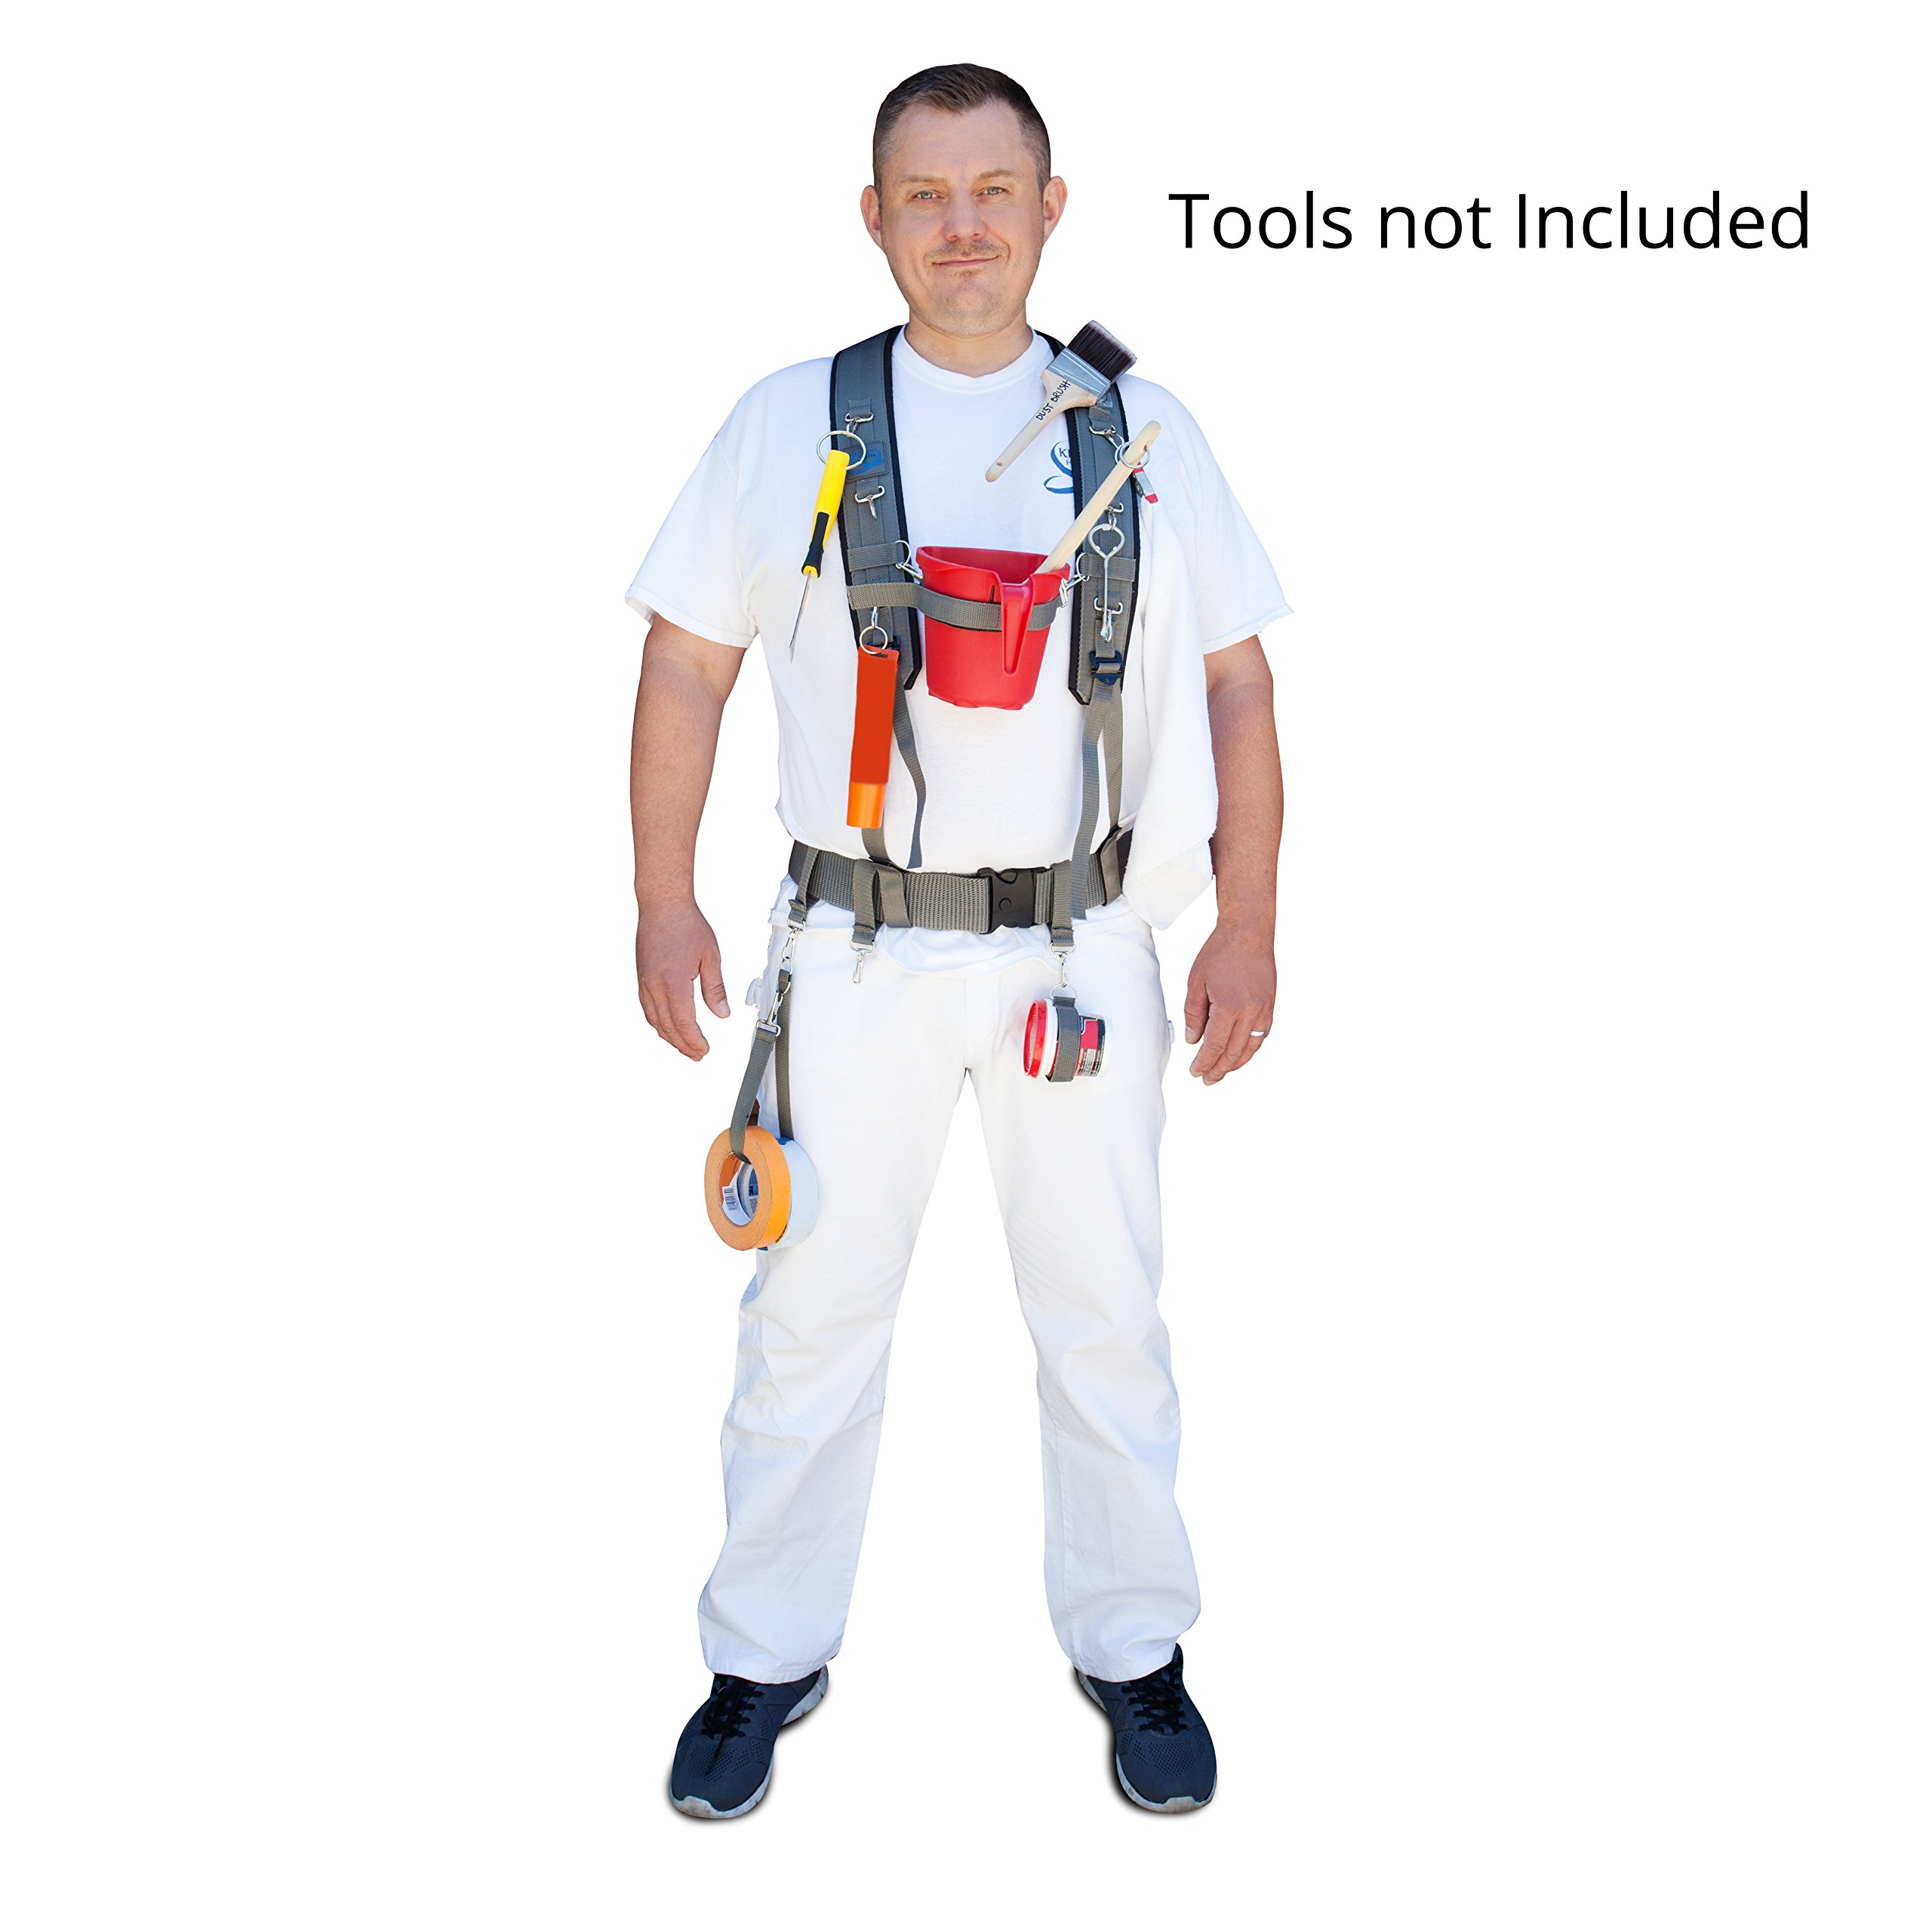 Painting Tool's Harness / Holder / Suspenders / Belt, New Professional Painters Harness - King's Harness by King's Harness INC